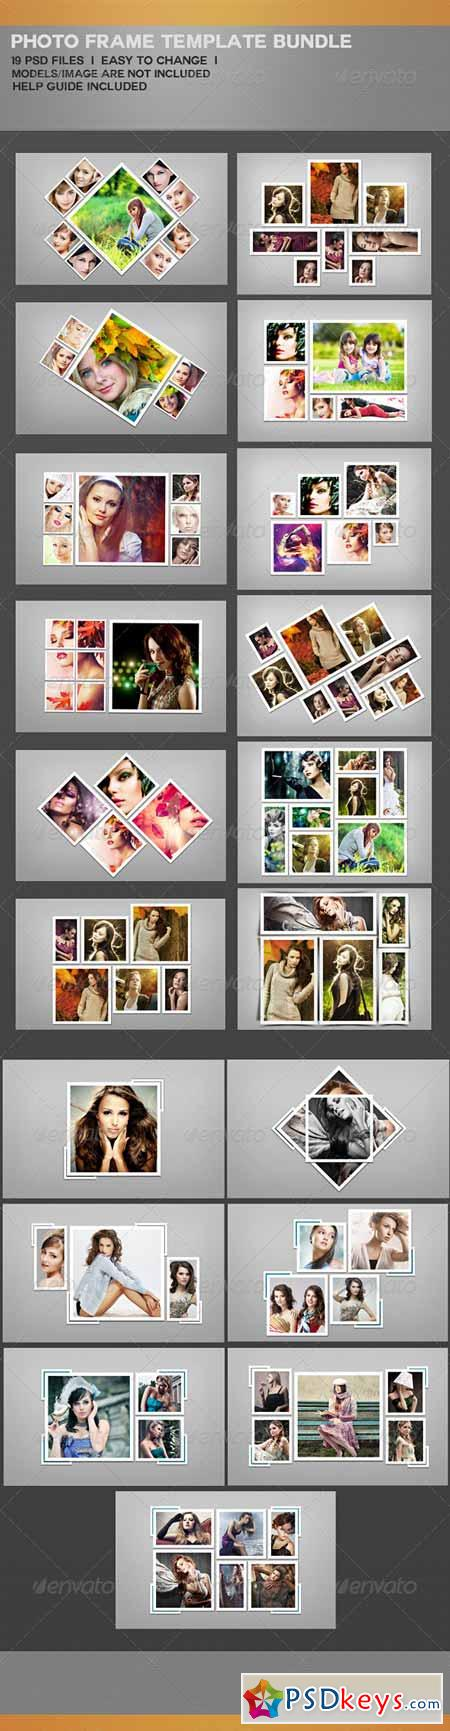 Photo Frame Template Bundle 7525302